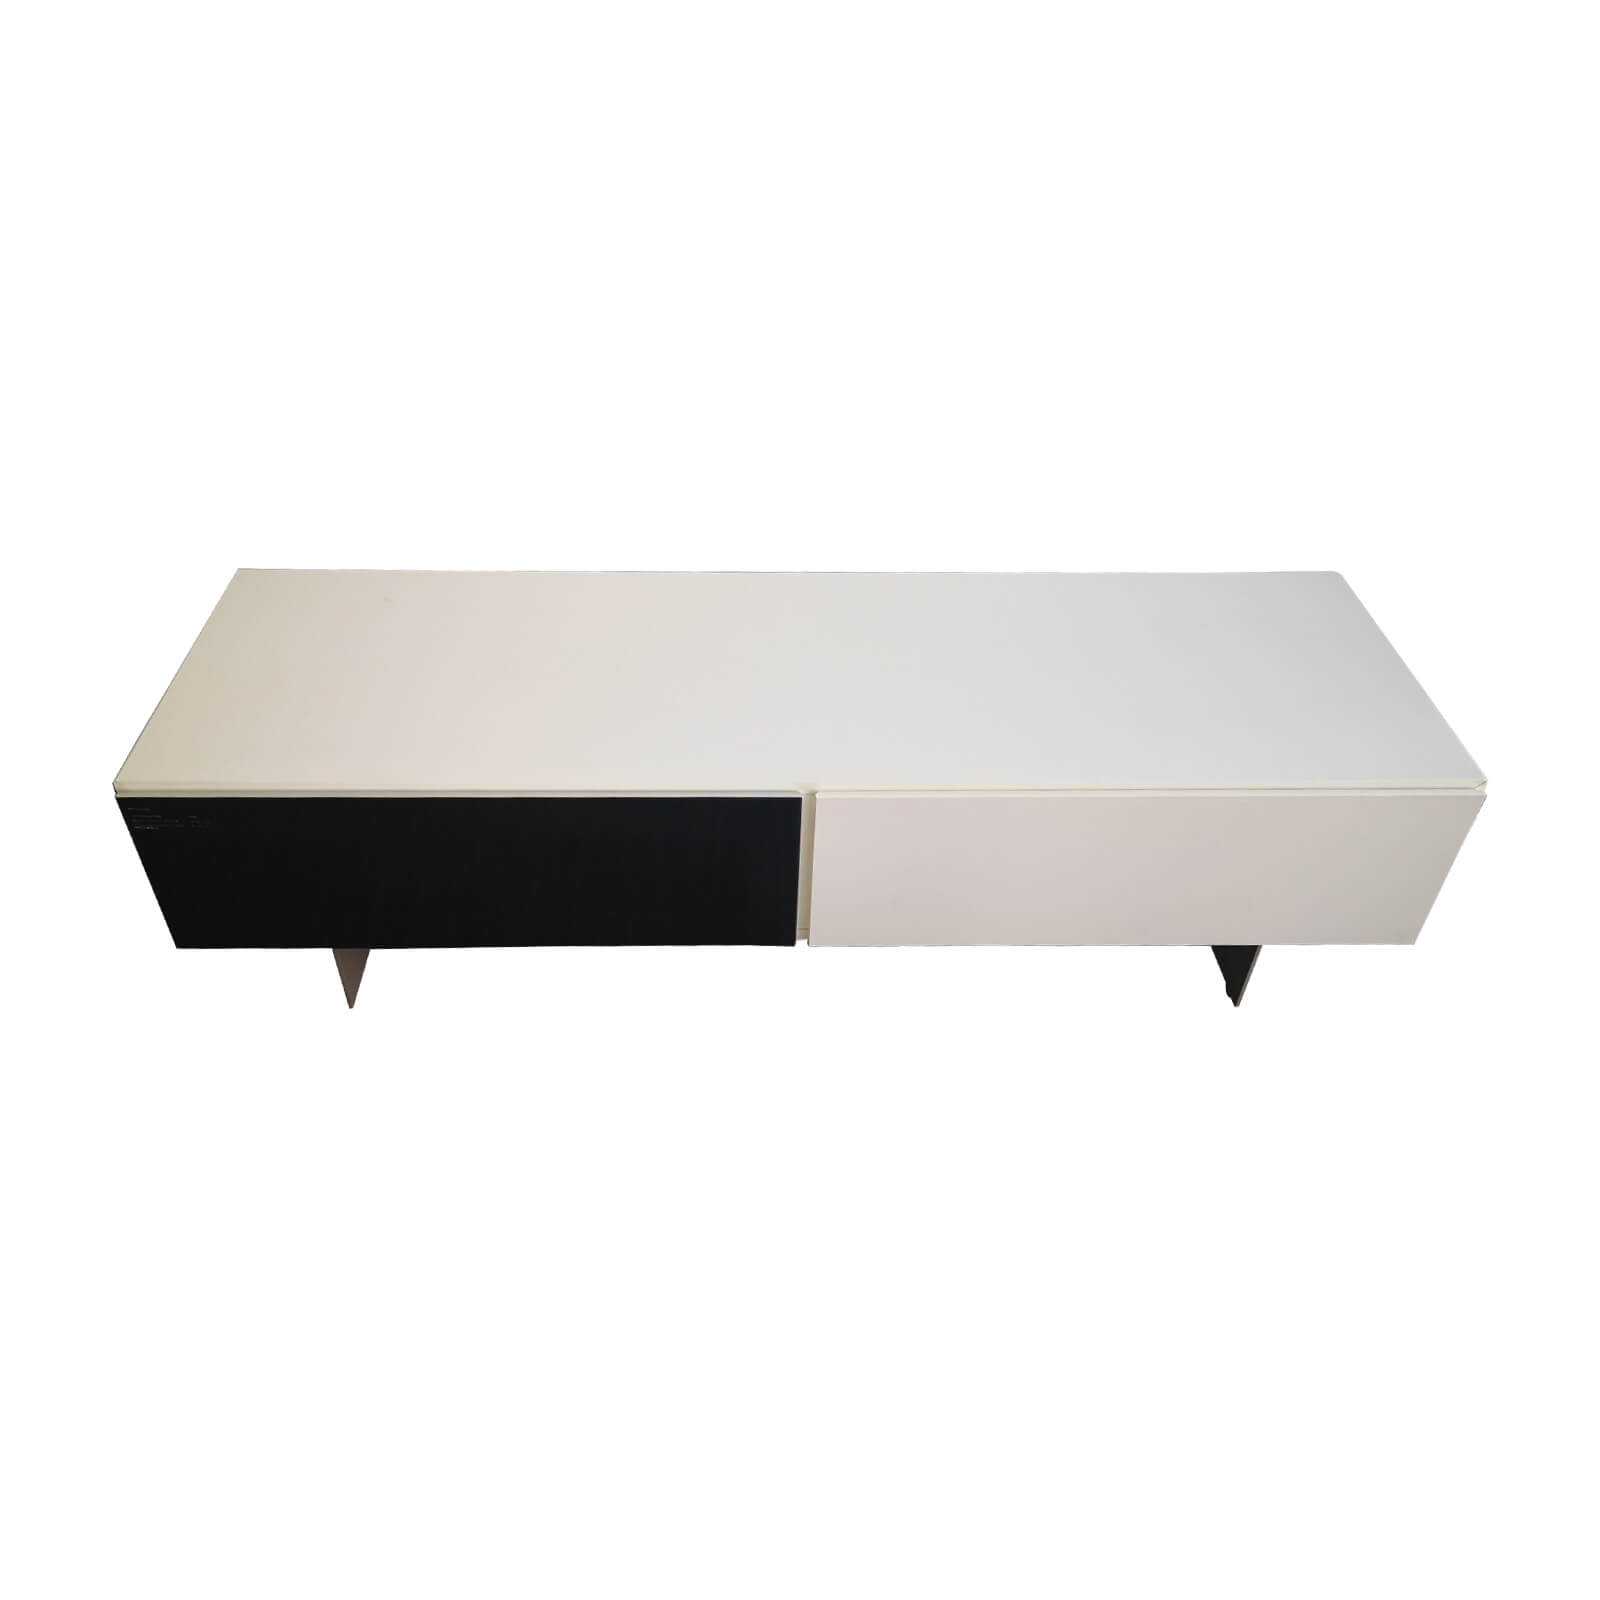 Two Design Lovers Bo Concept Lugano low cabinet with glass door